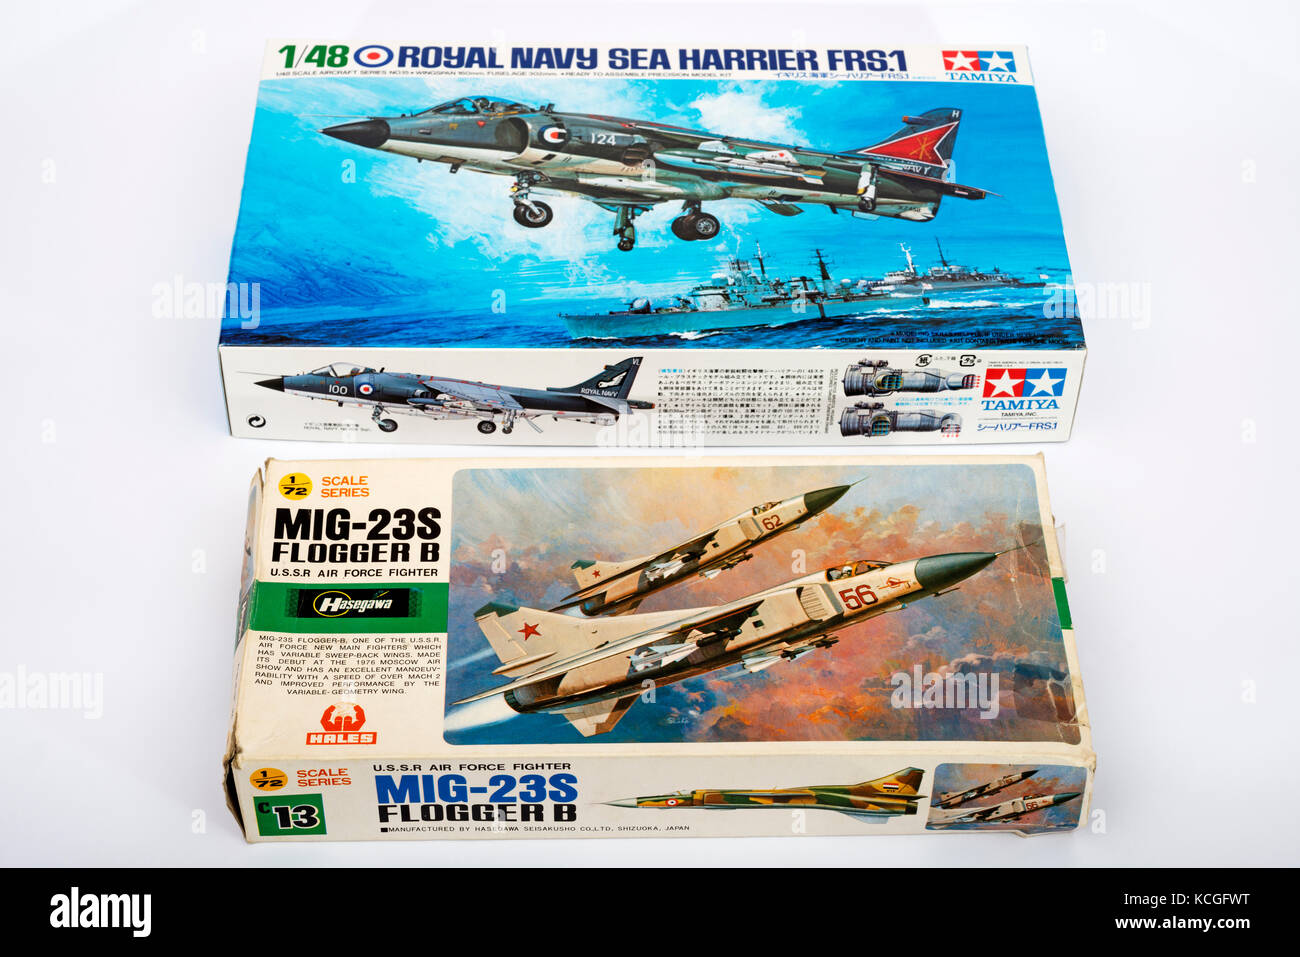 Cold War fighter jets Scale model kits - Stock Image